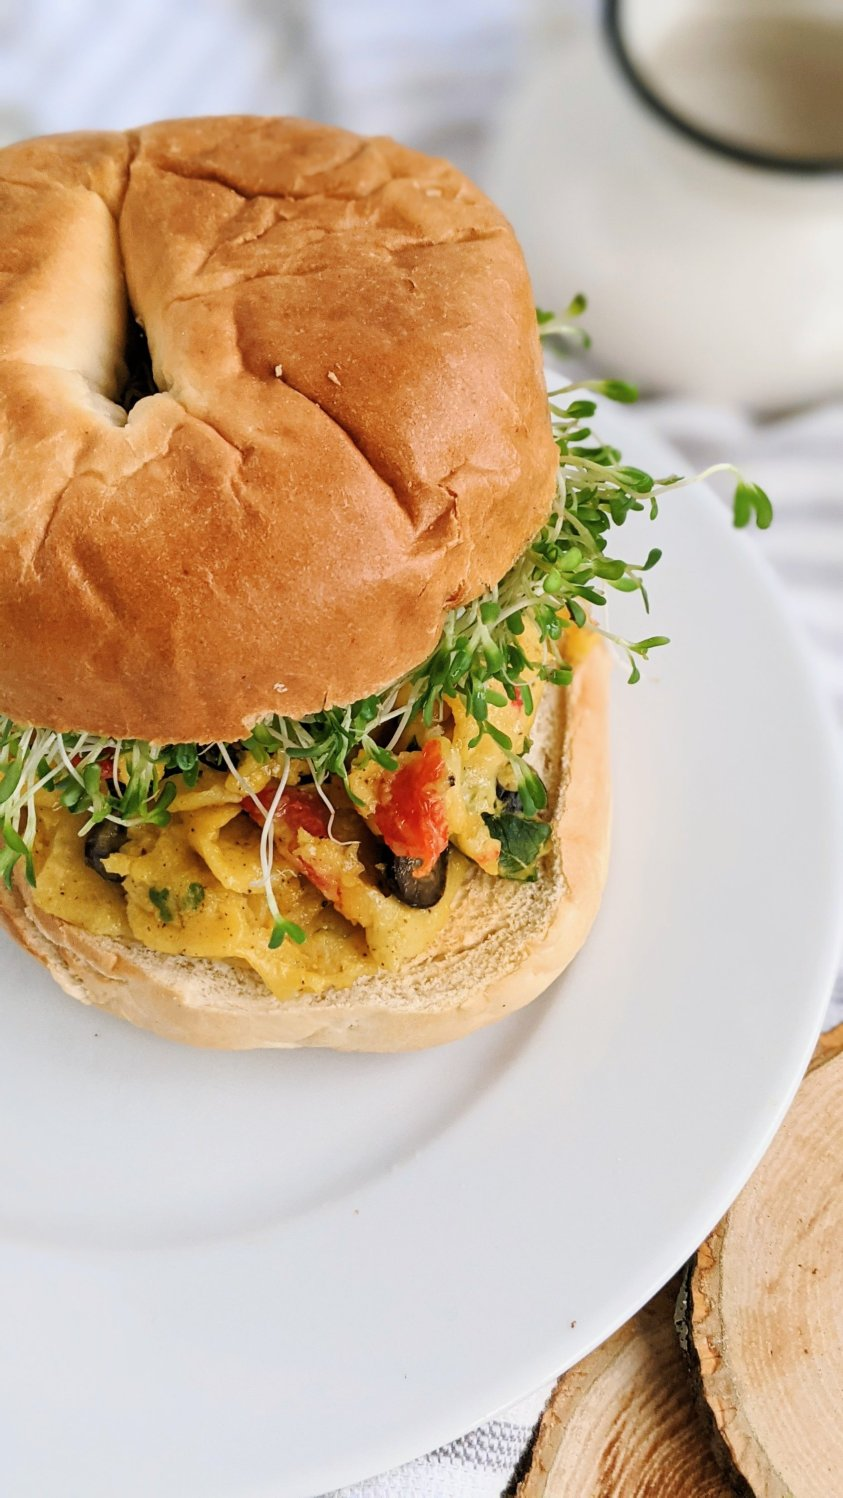 breakfast garbanzo brean recipes vegan gluten free chickpea flour scramble sandwich recipes on a vegan breakfast bagel sandwich healthy high protein gluten free plant based